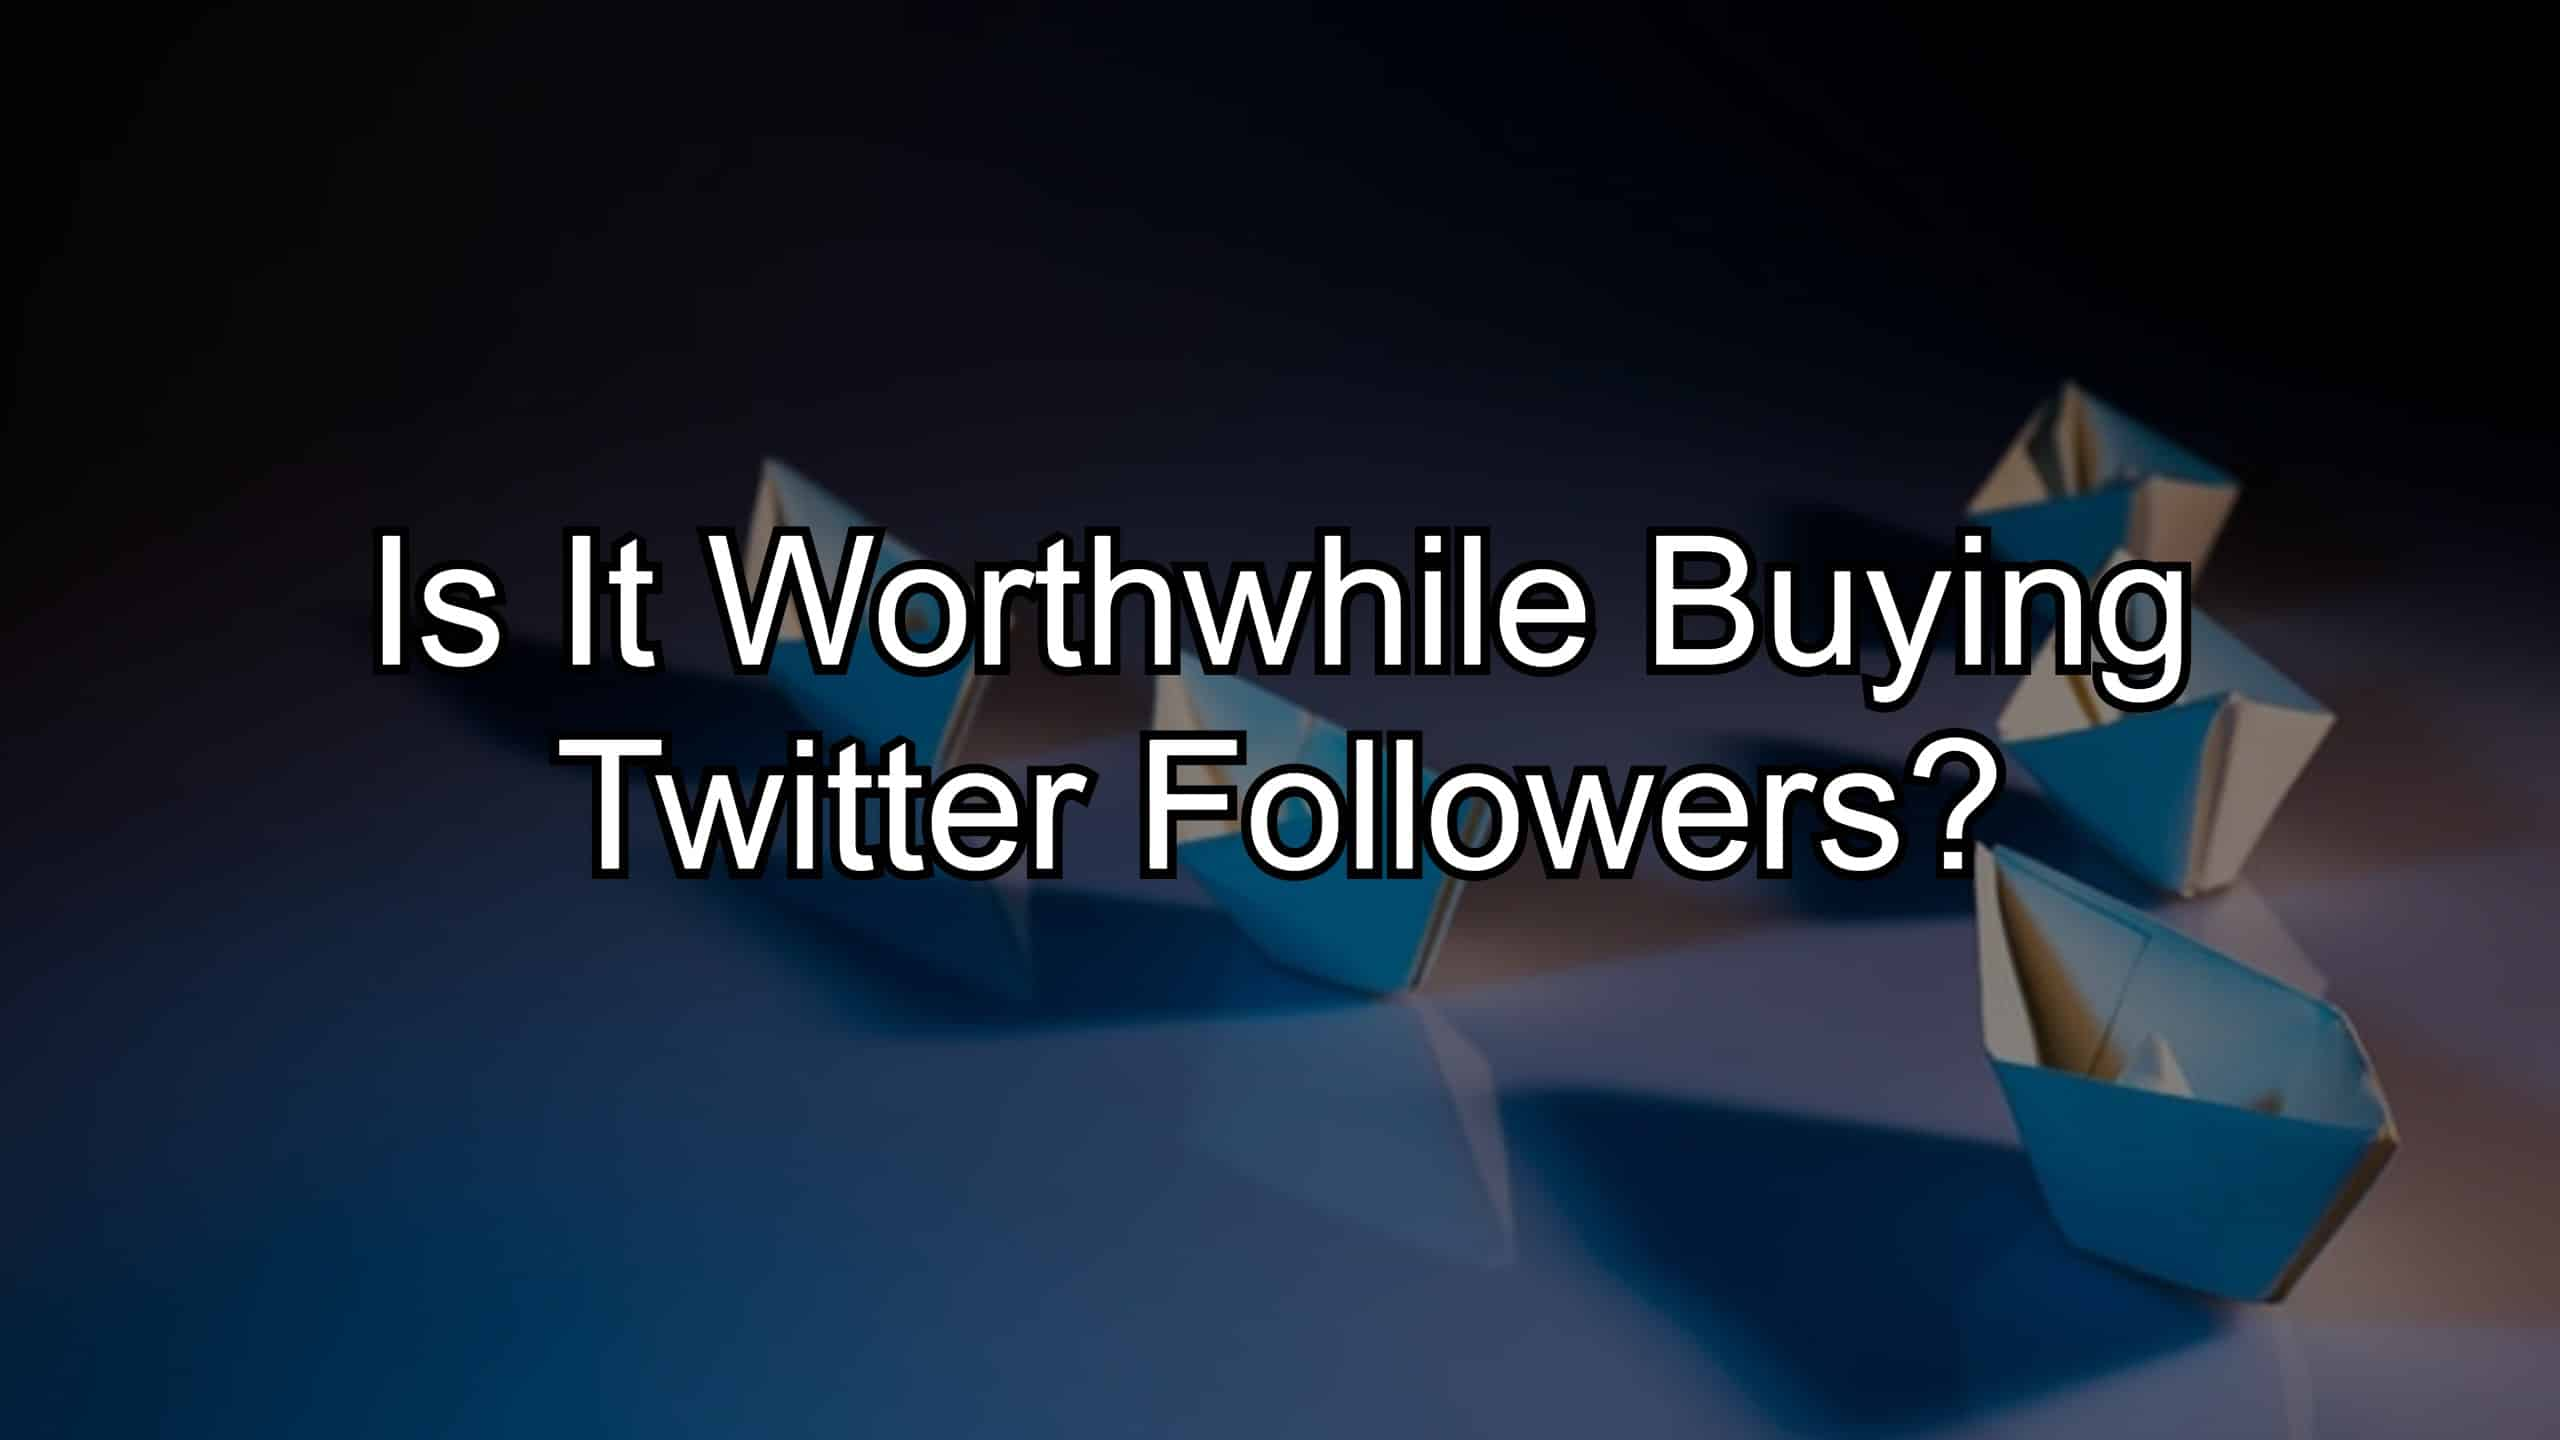 Is It Worthwhile Buying Twitter Followers?